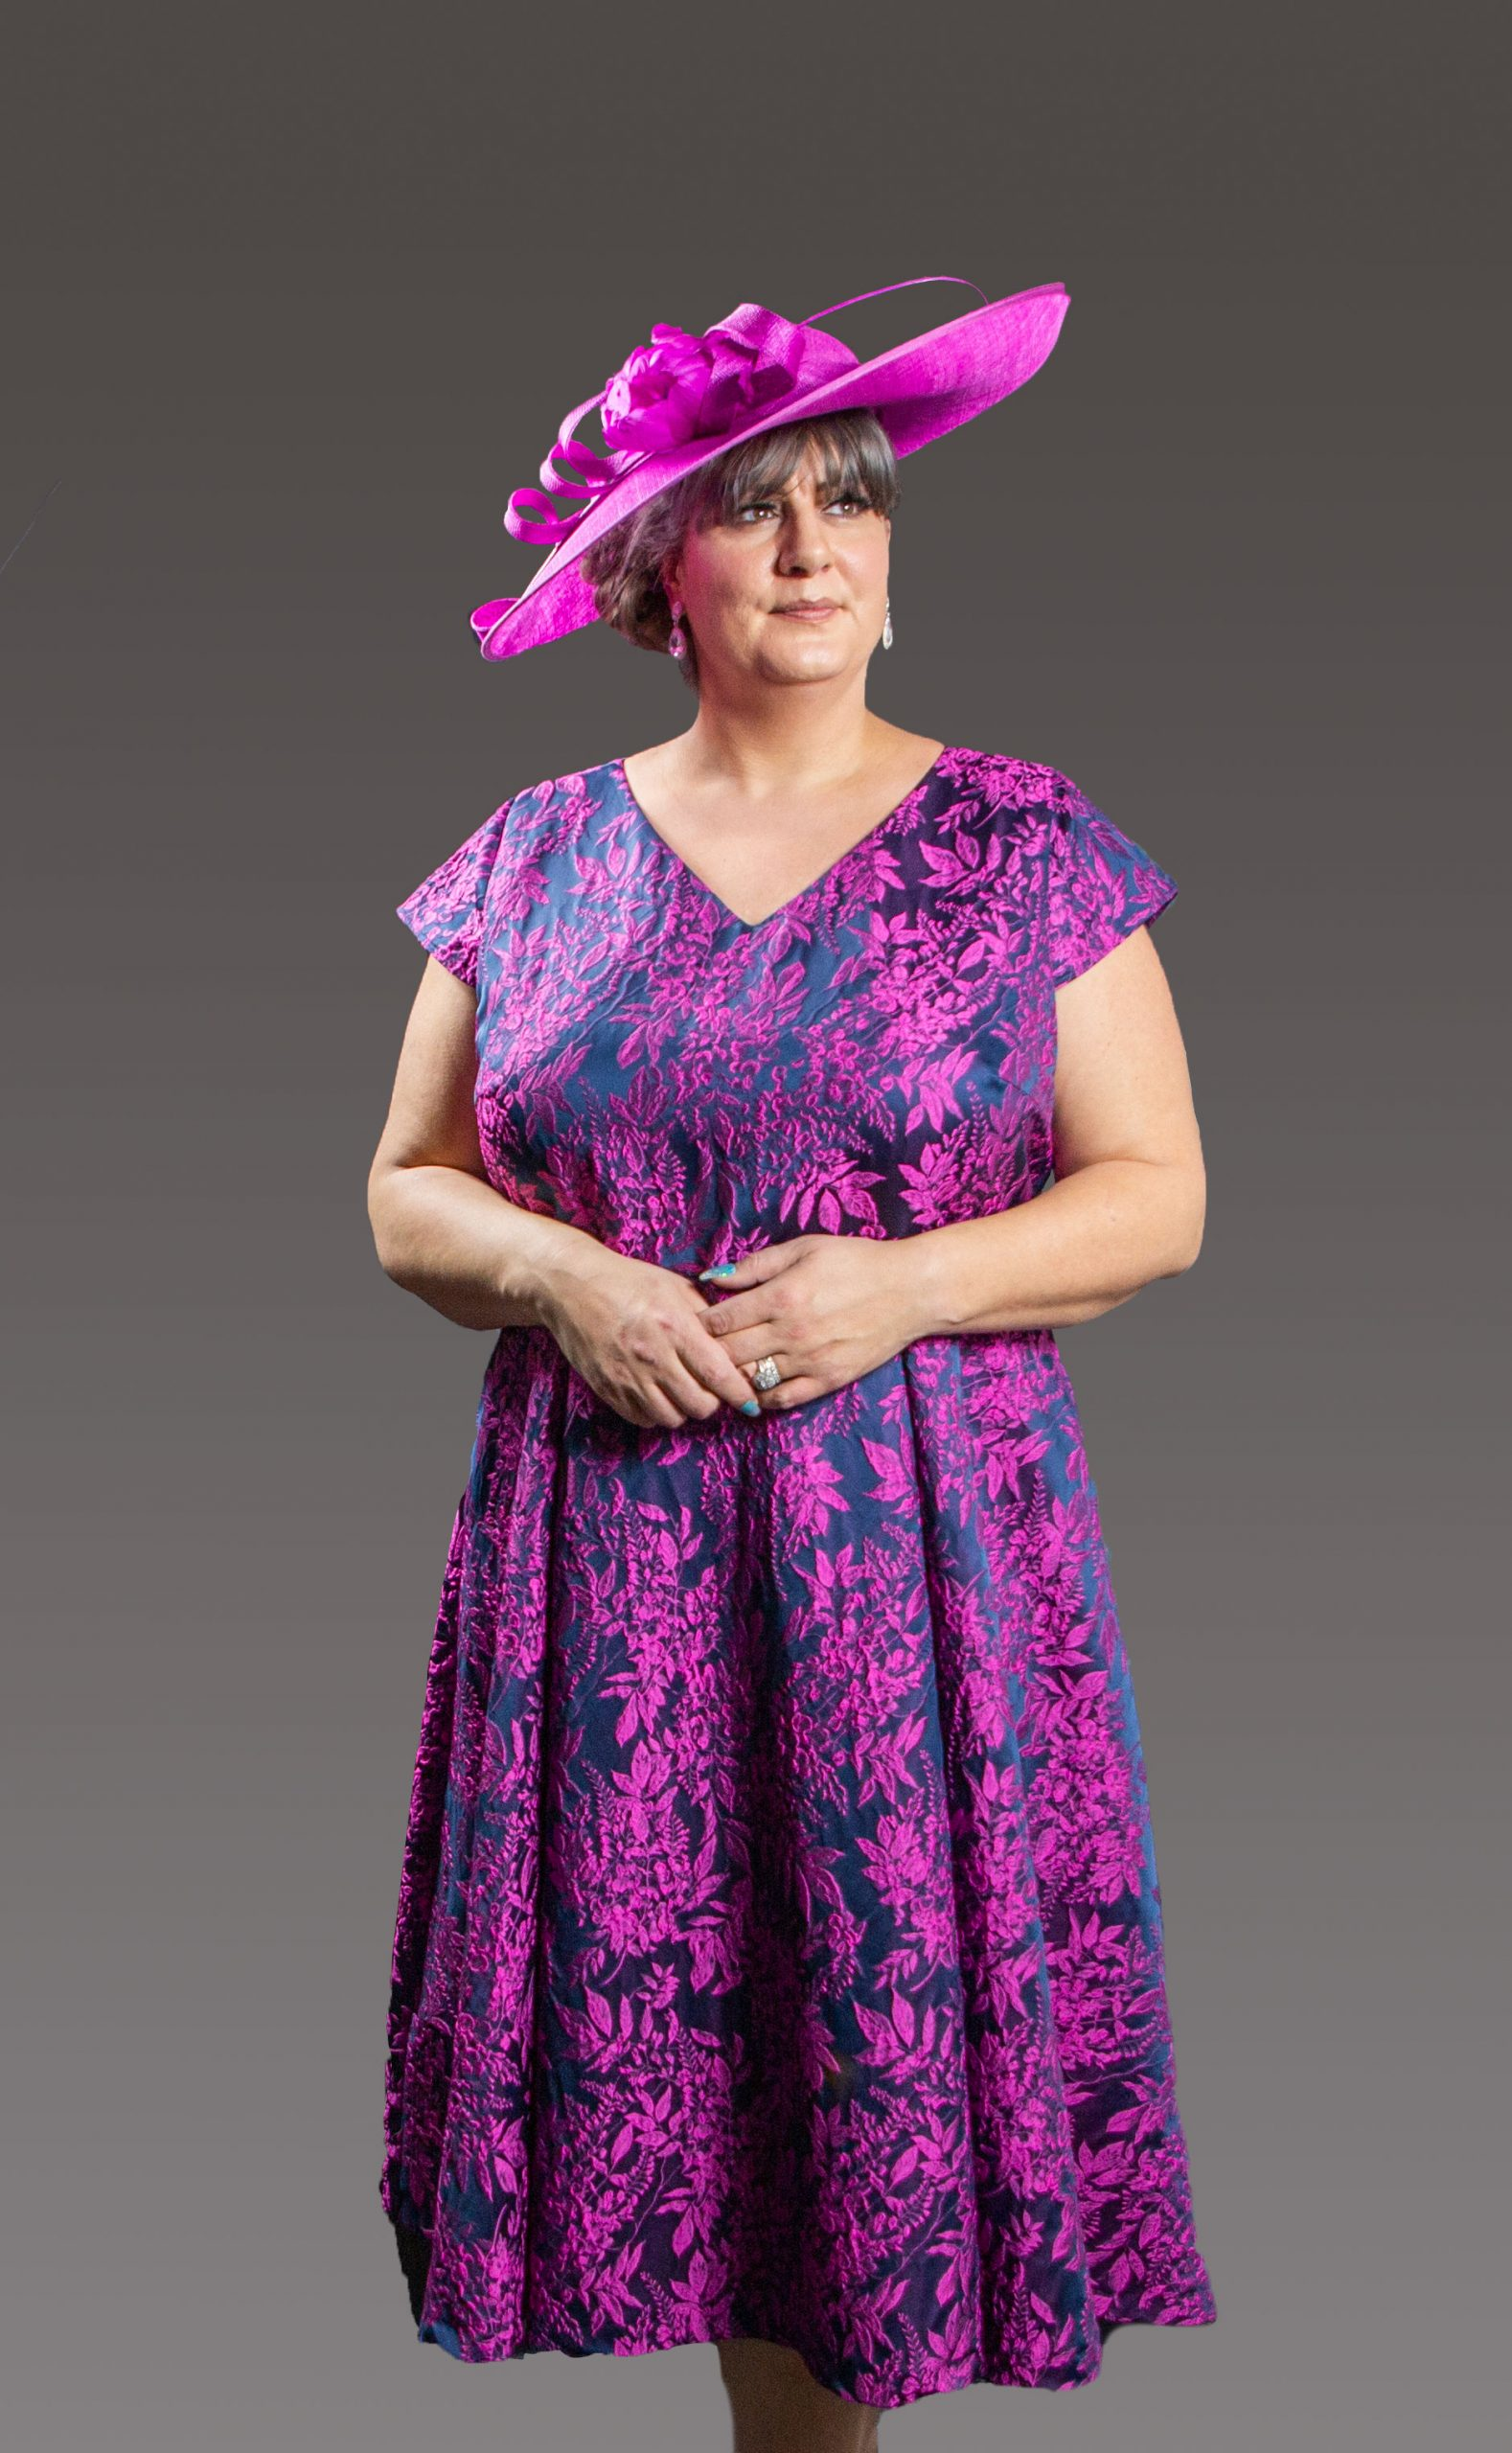 A-Line V-neck Tea-Length floral patterned dress with cap sleeve. This dress gives the flattering look with the waist panel and symmetrical design. Fuchsia/navy - 47496 (004321)